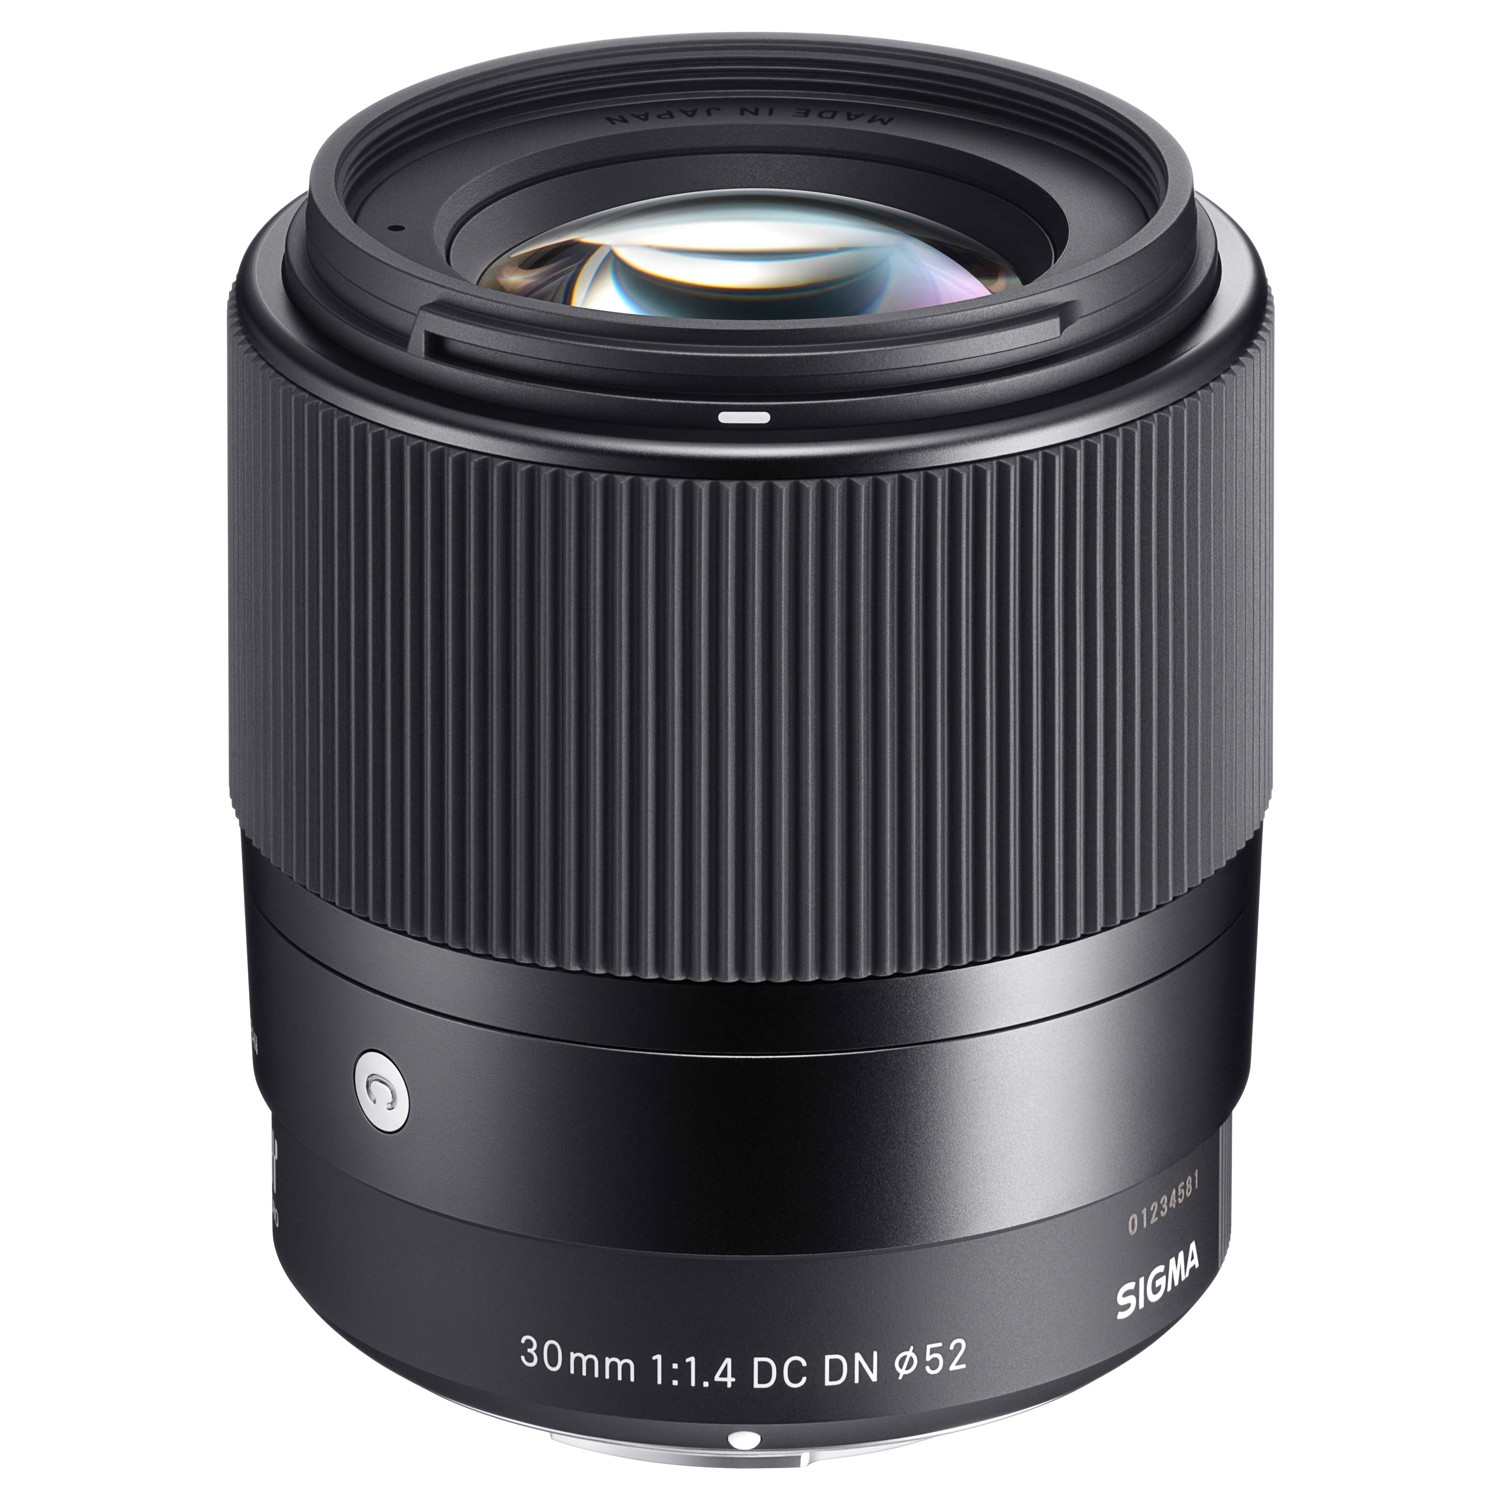 30mm f/1.4 DC DN Contemporary - Sony E